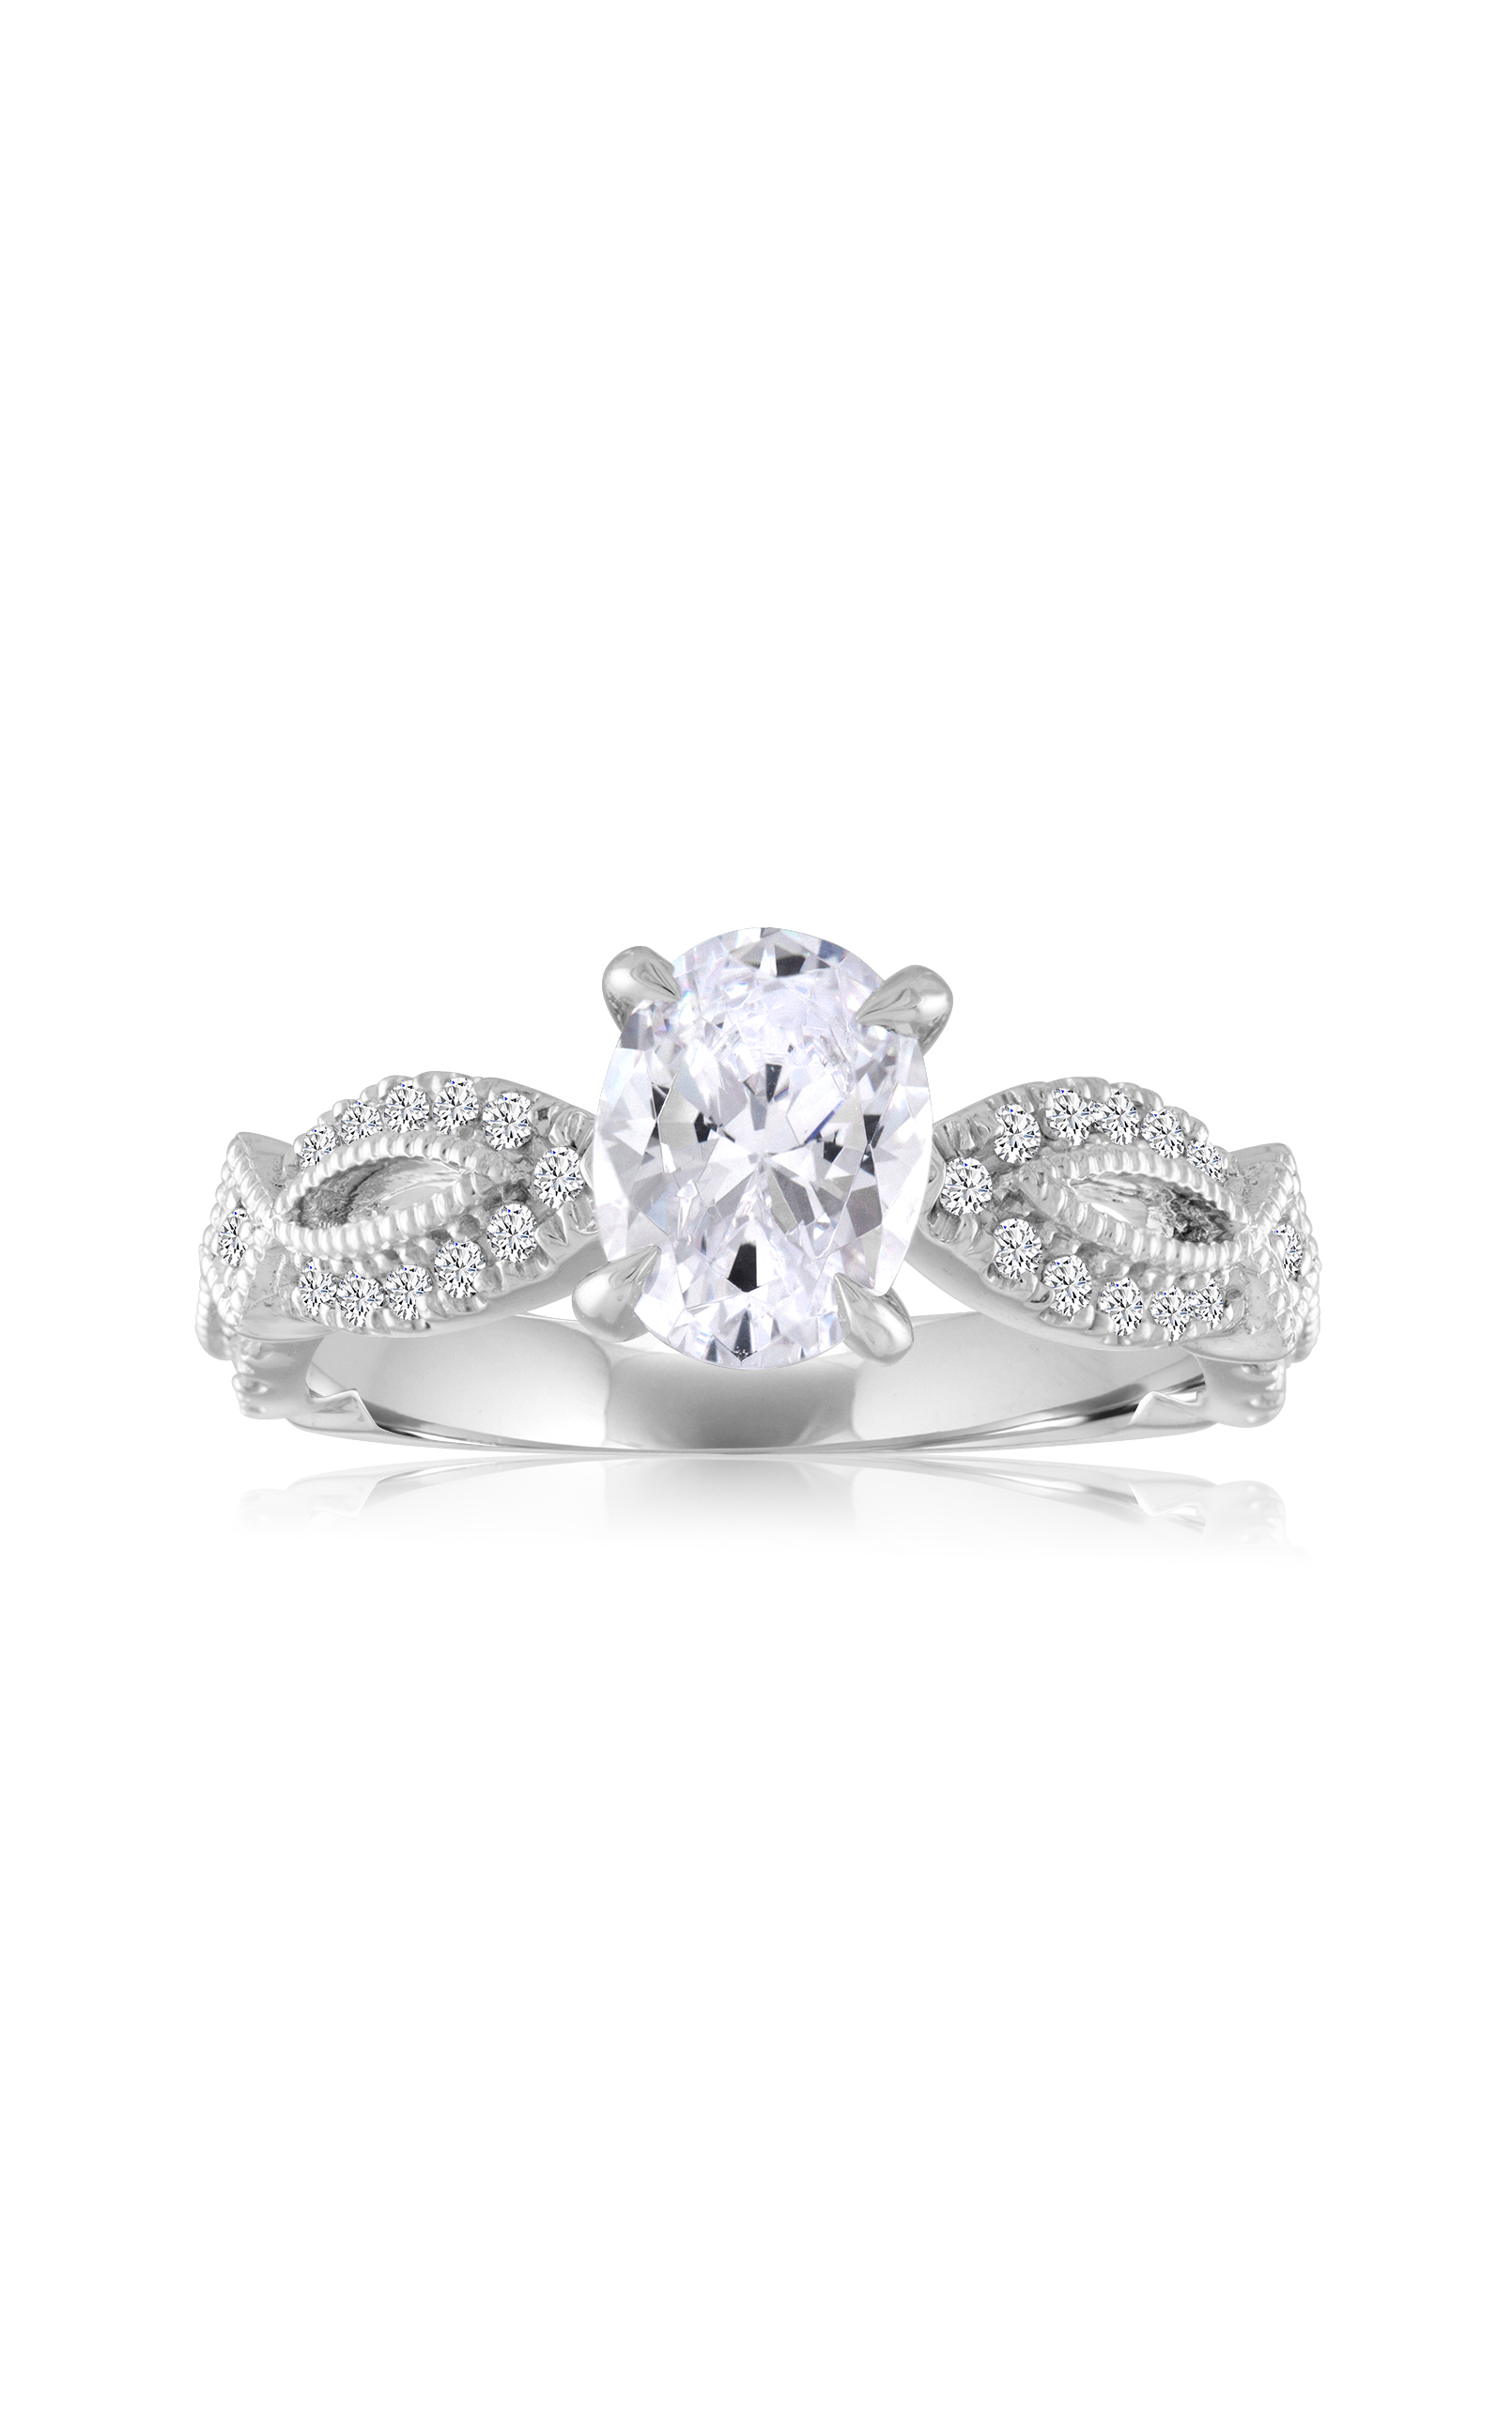 Imagine Bridal Engagement Rings 64446d1 4 Product Image: Were Find Wedding Rings At Websimilar.org